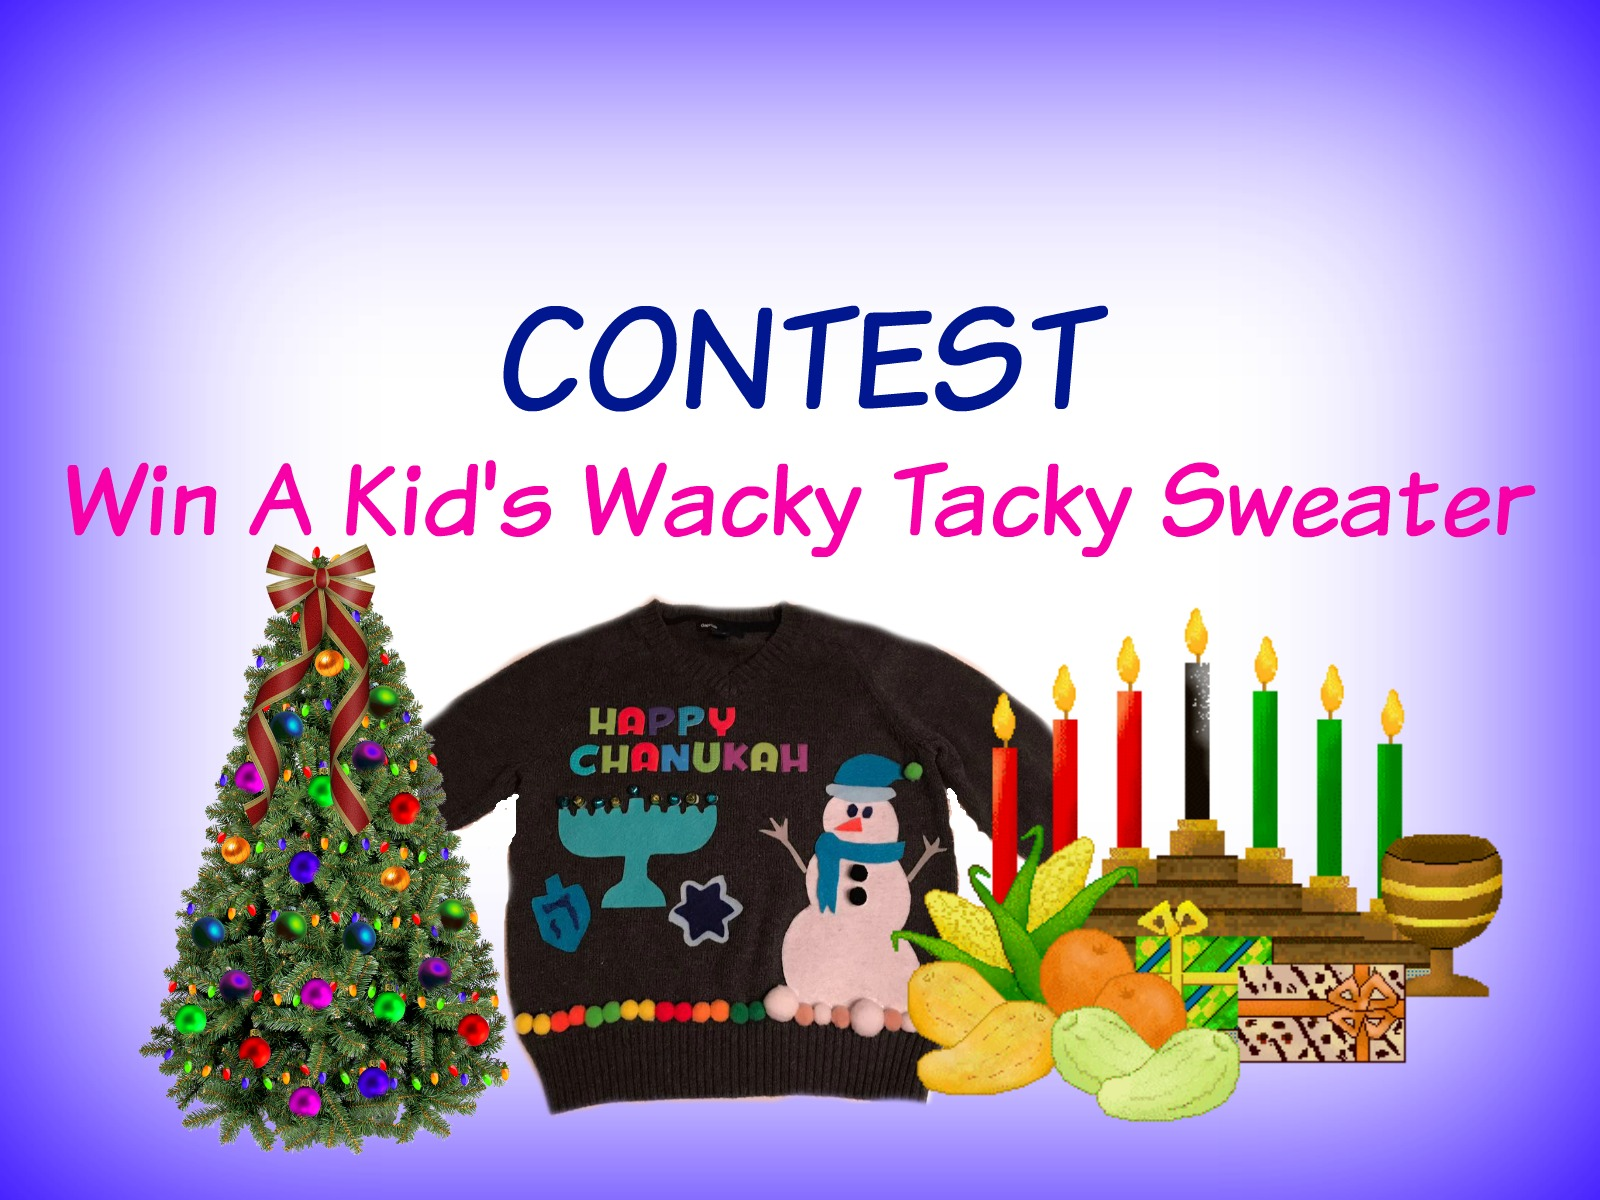 Contest: Win A Wacky Tacky Sweater (24 Hour Contest)